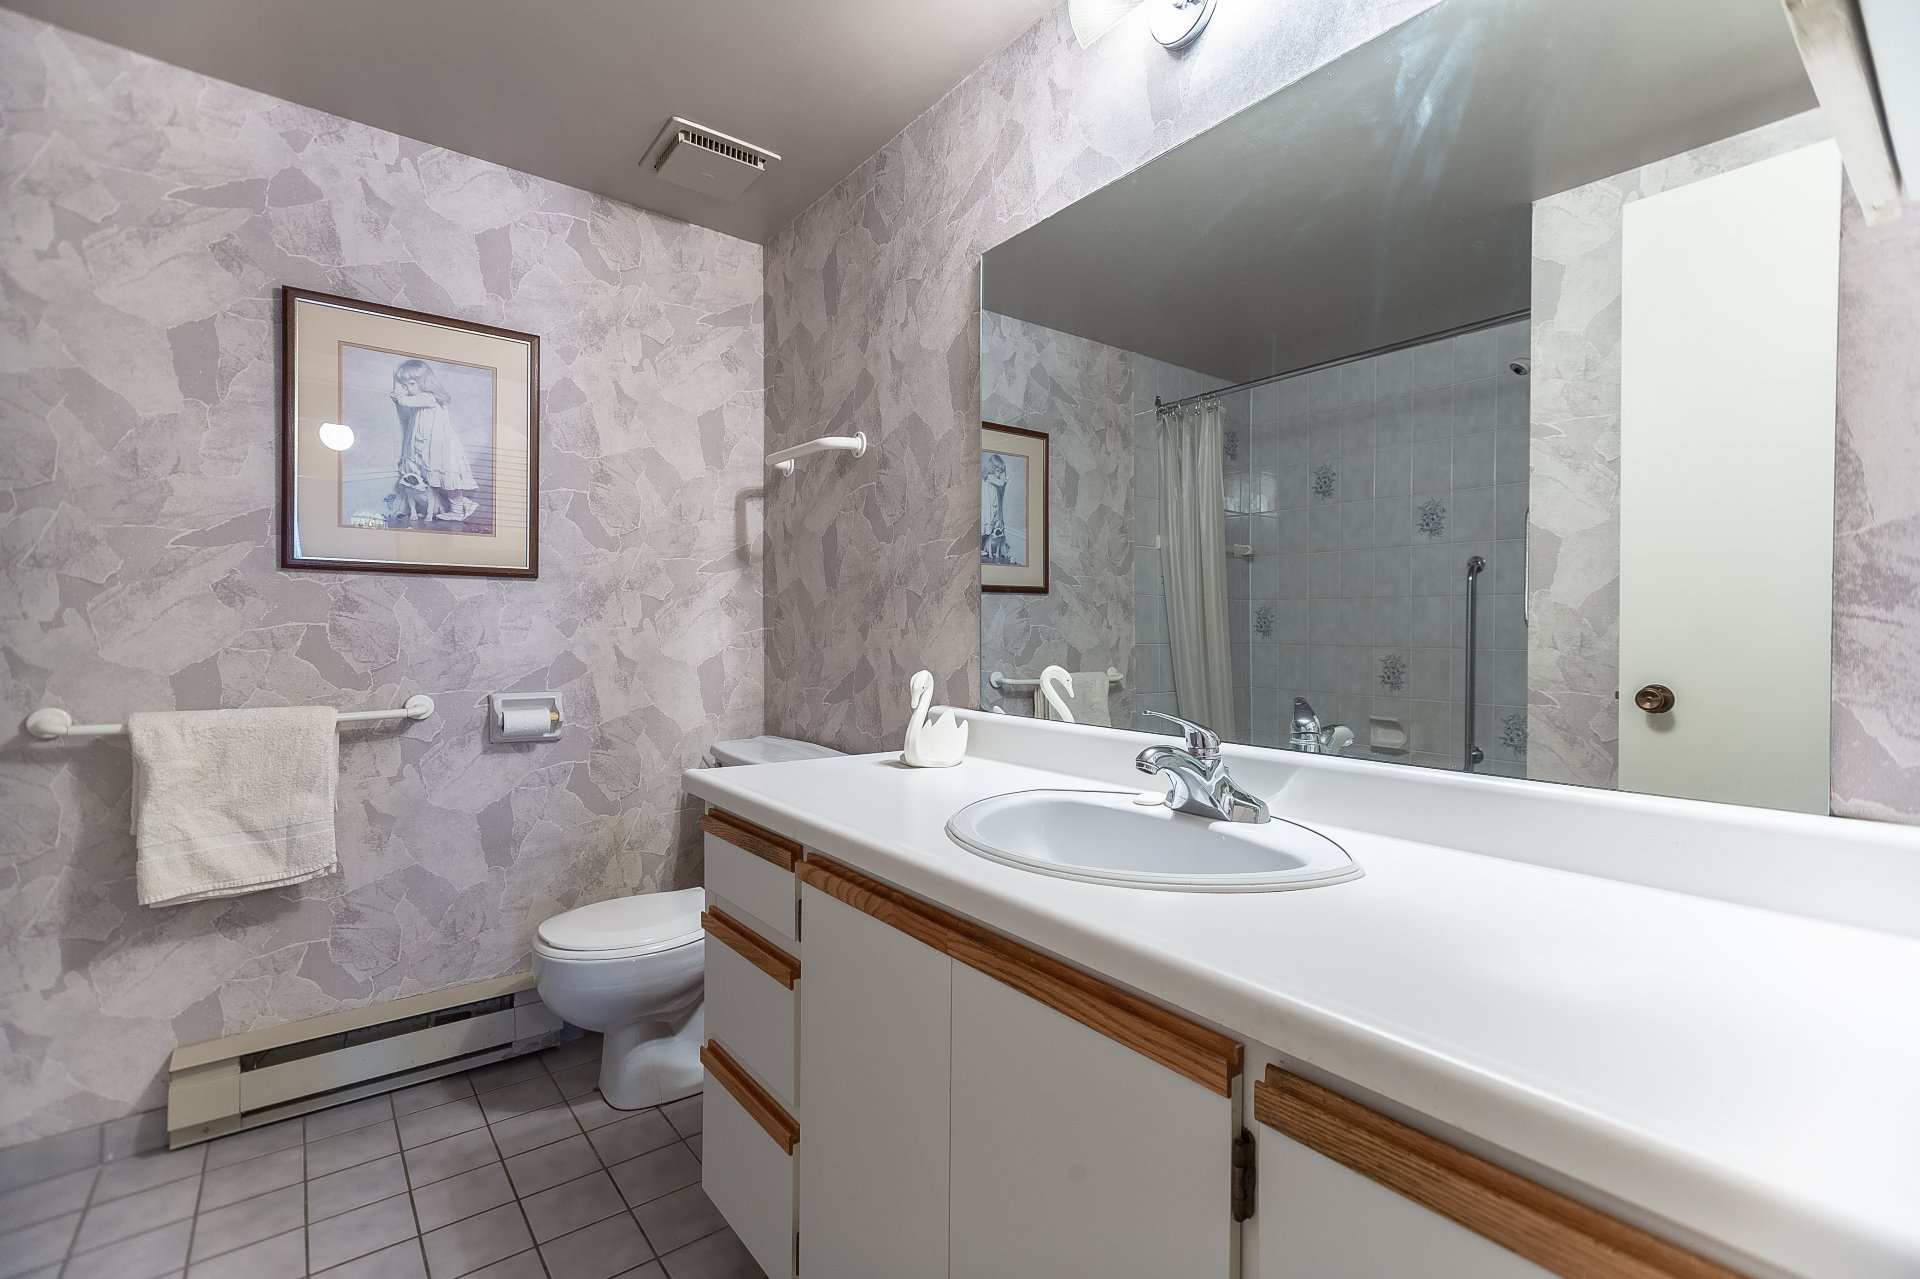 Salle De Bain Coteau Terrebonne ~ apartment for sale pierrefonds roxboro montreal buy apartment